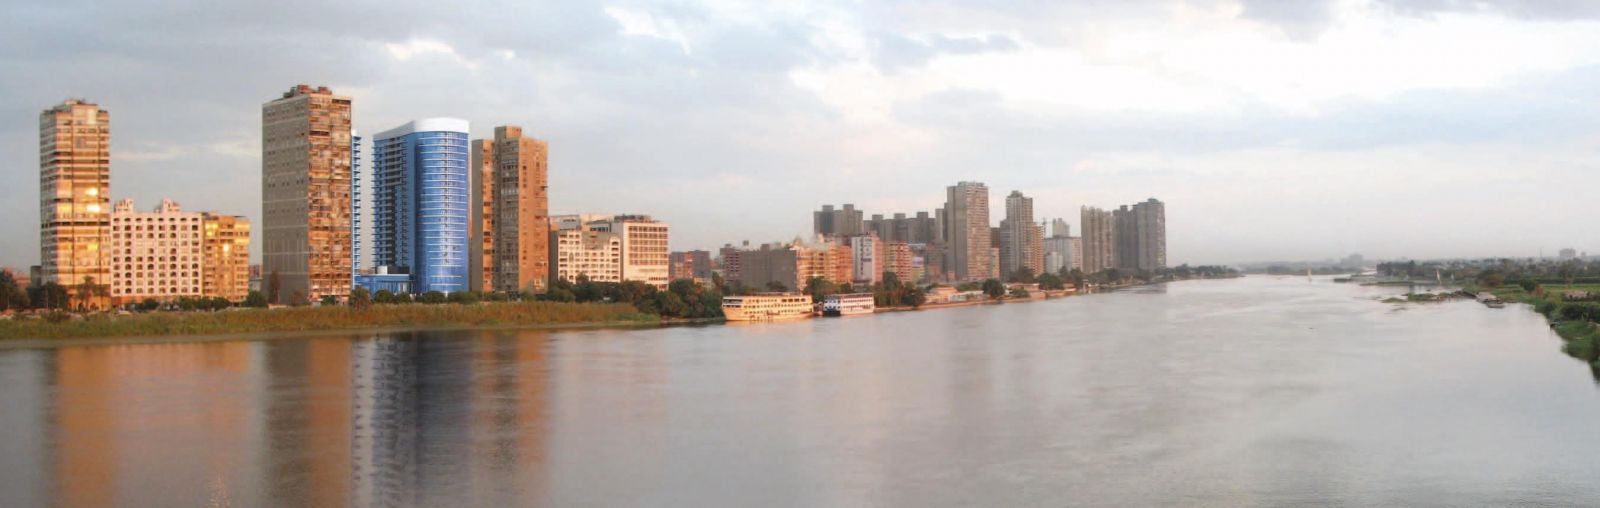 SECON-NILE-TOWERS